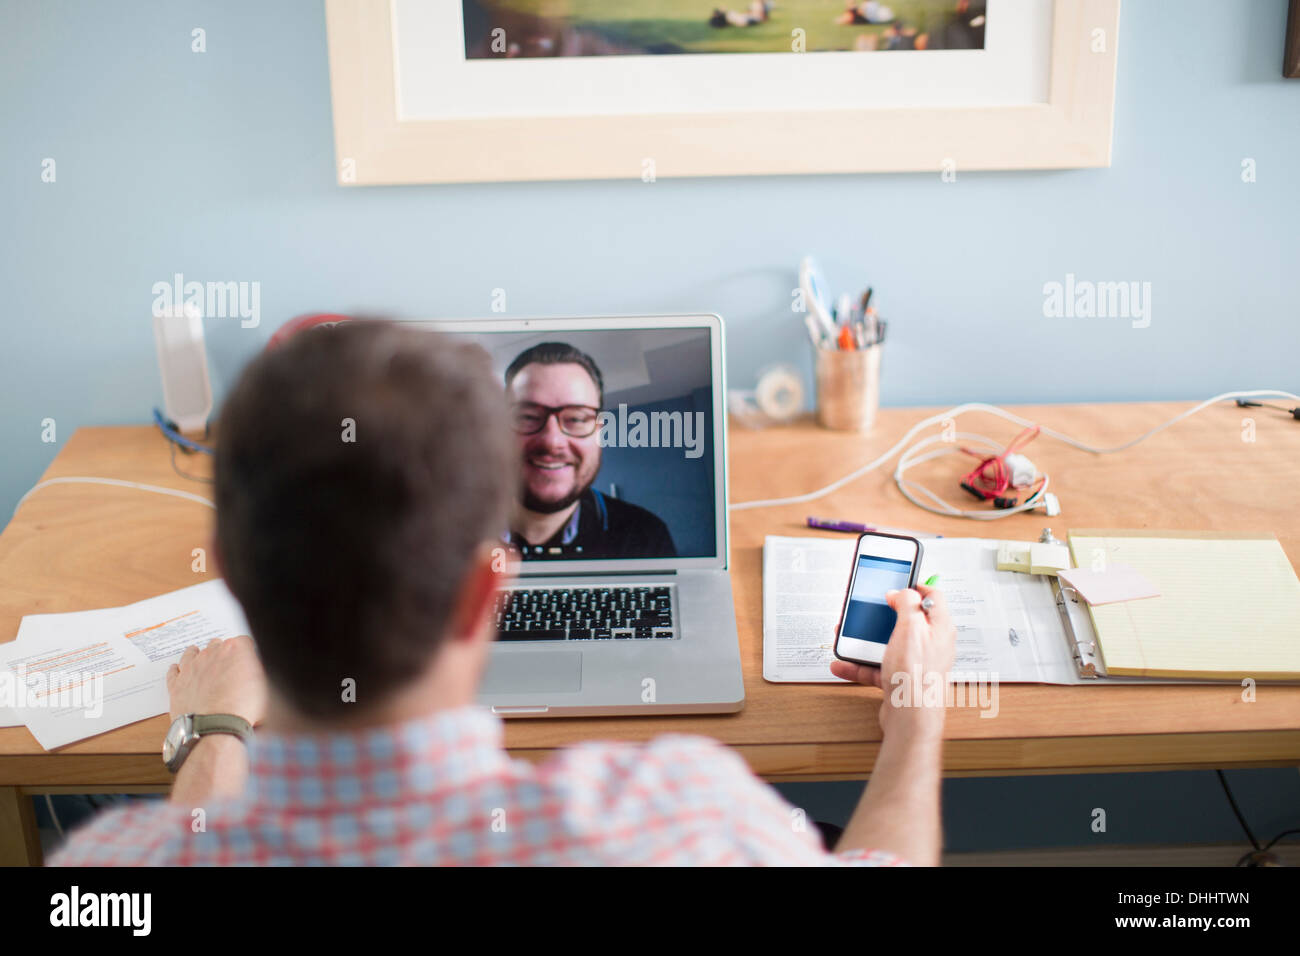 Man sitting at desk making video call - Stock Image